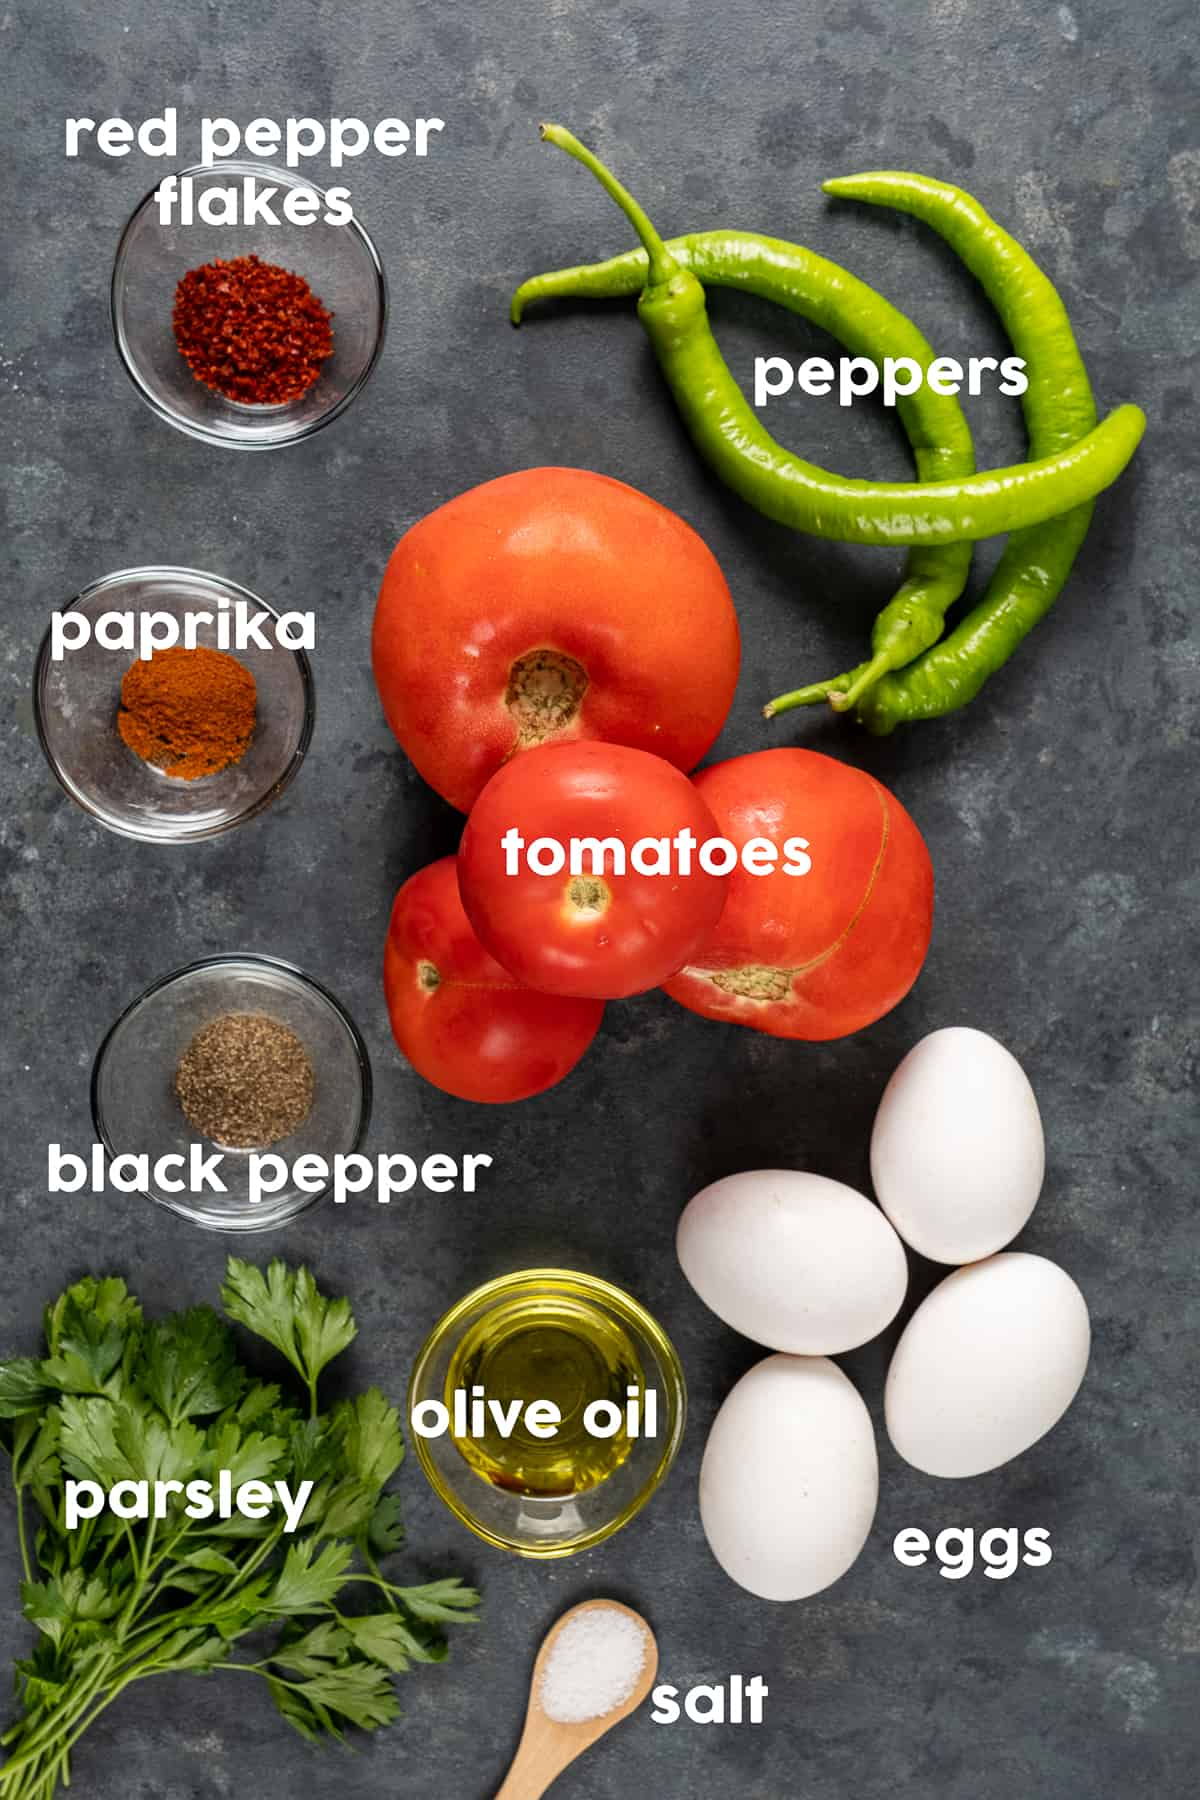 Tomatoes, Turkish green peppers, eggs with their shells, spices, parsley and olive oil on a dark background.